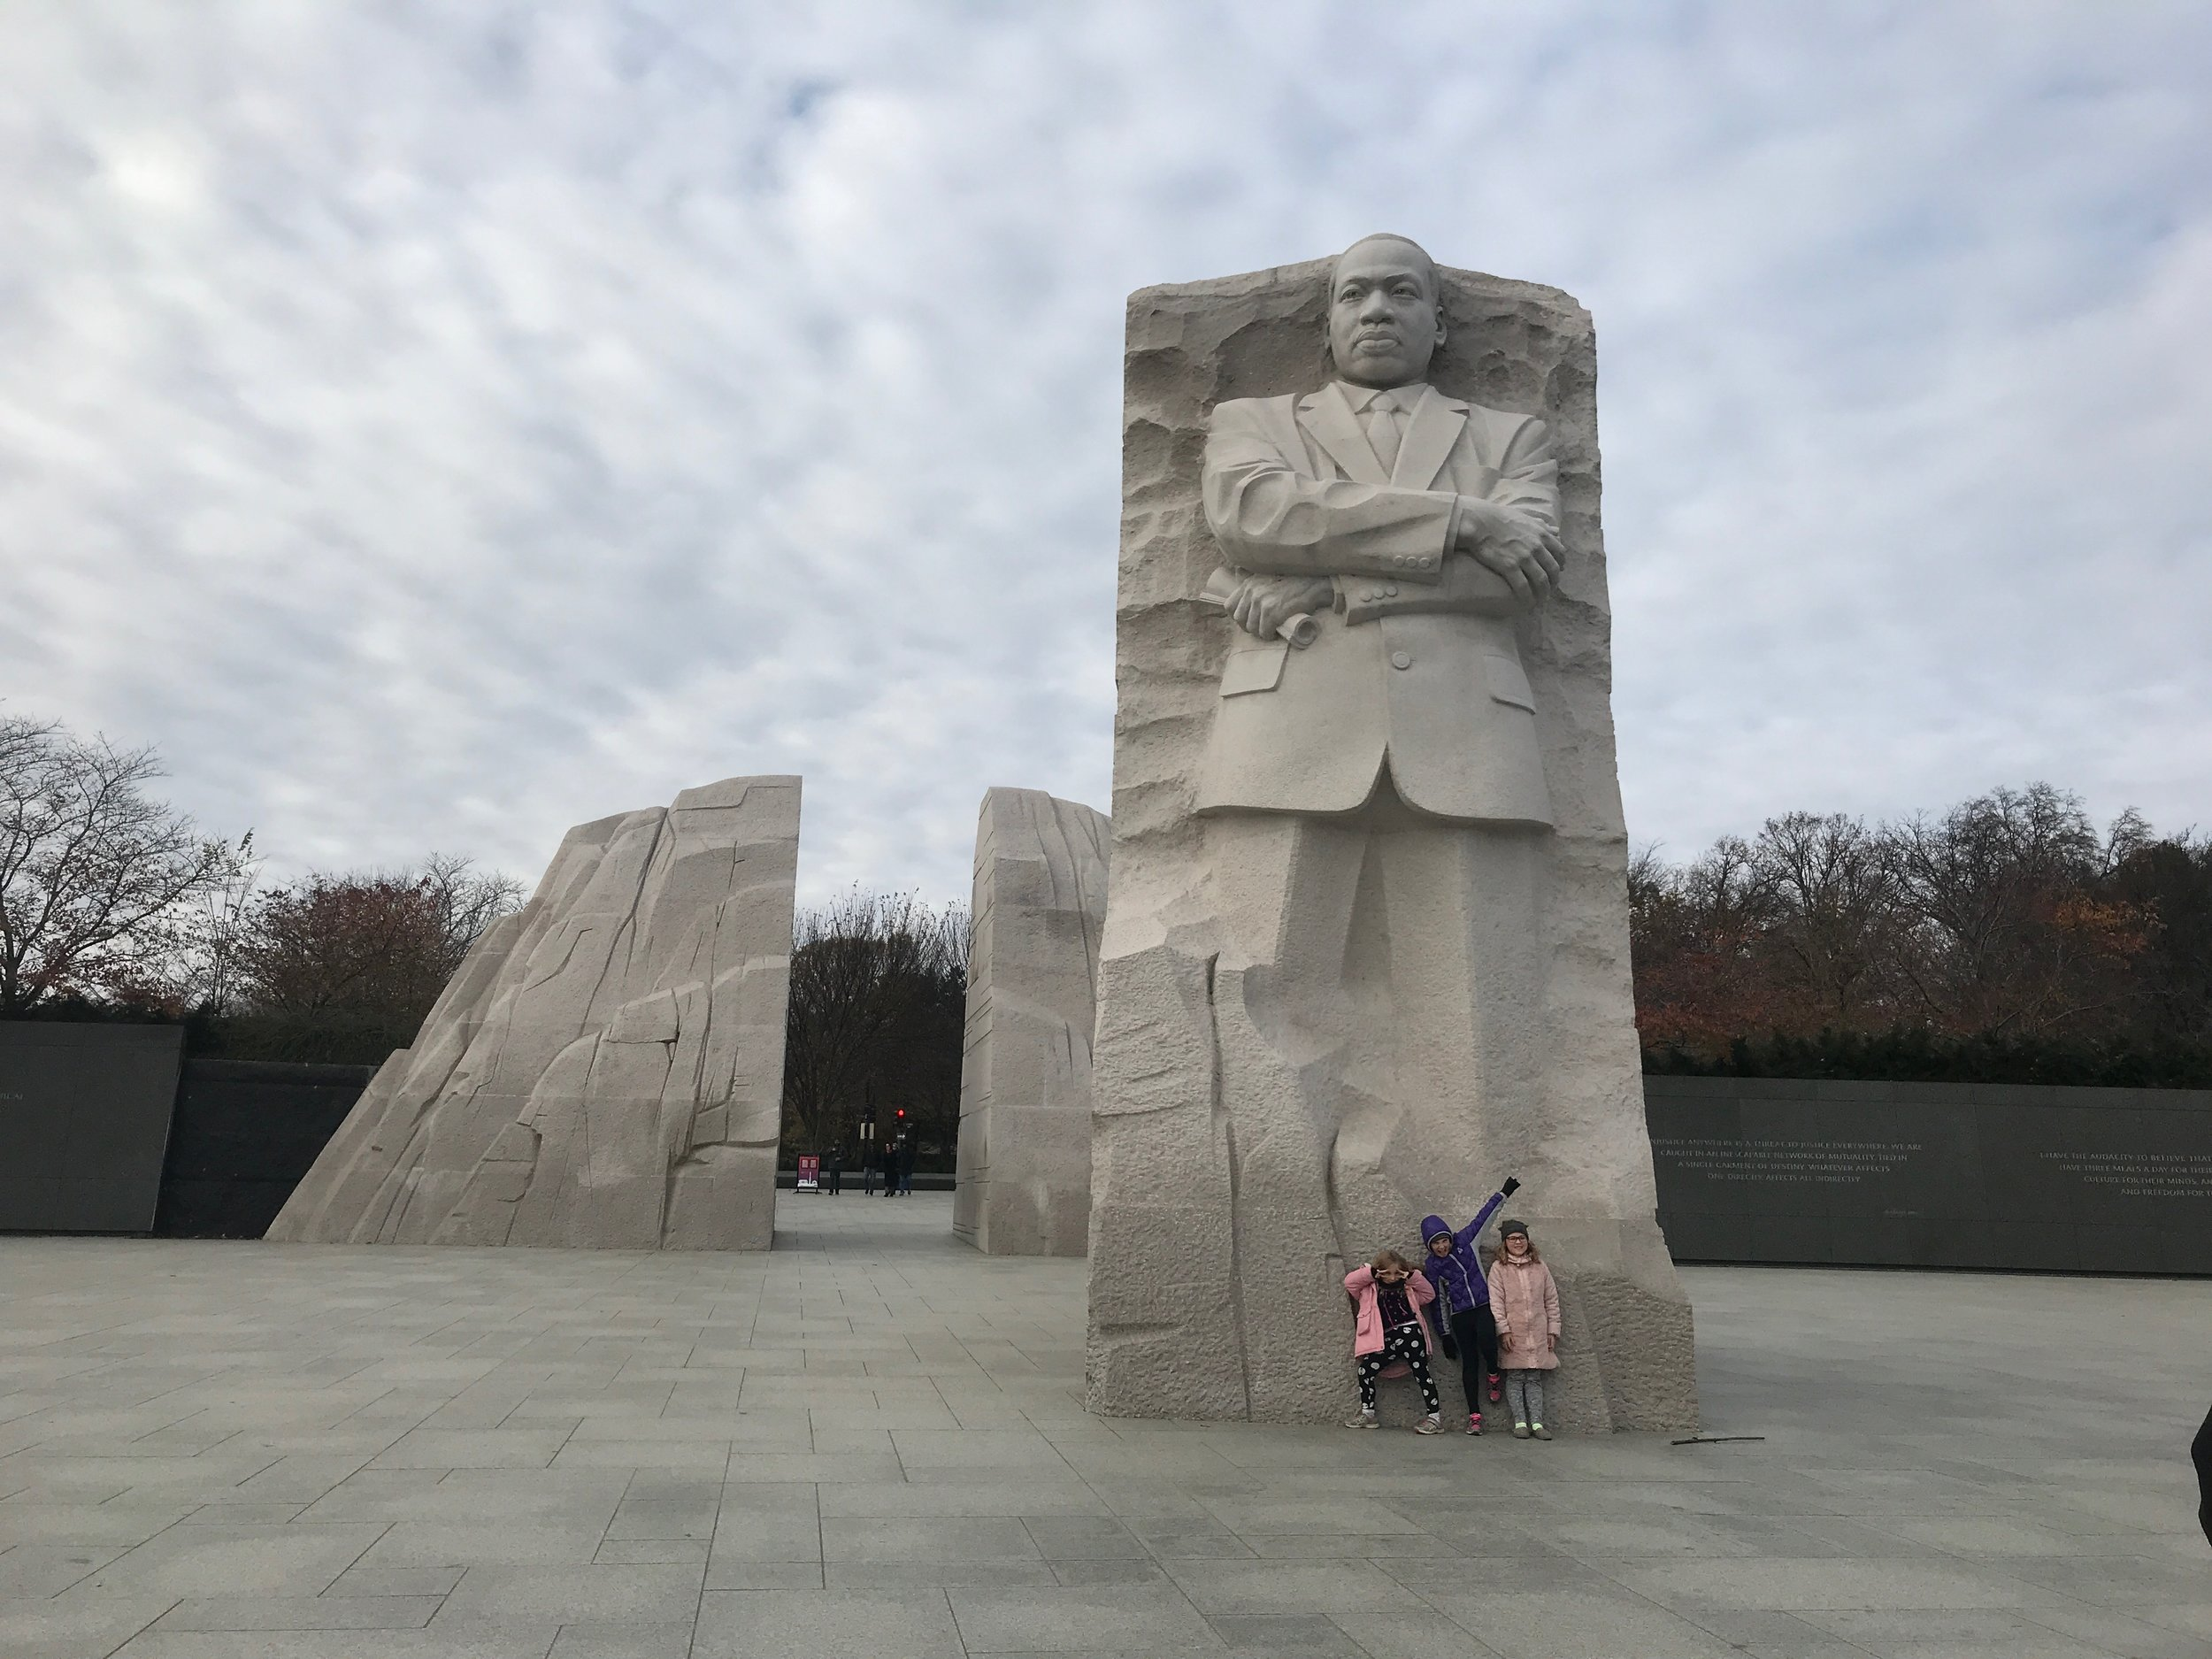 The memorial to Martin Luther King Jr. on the National Mall in Washington DC.